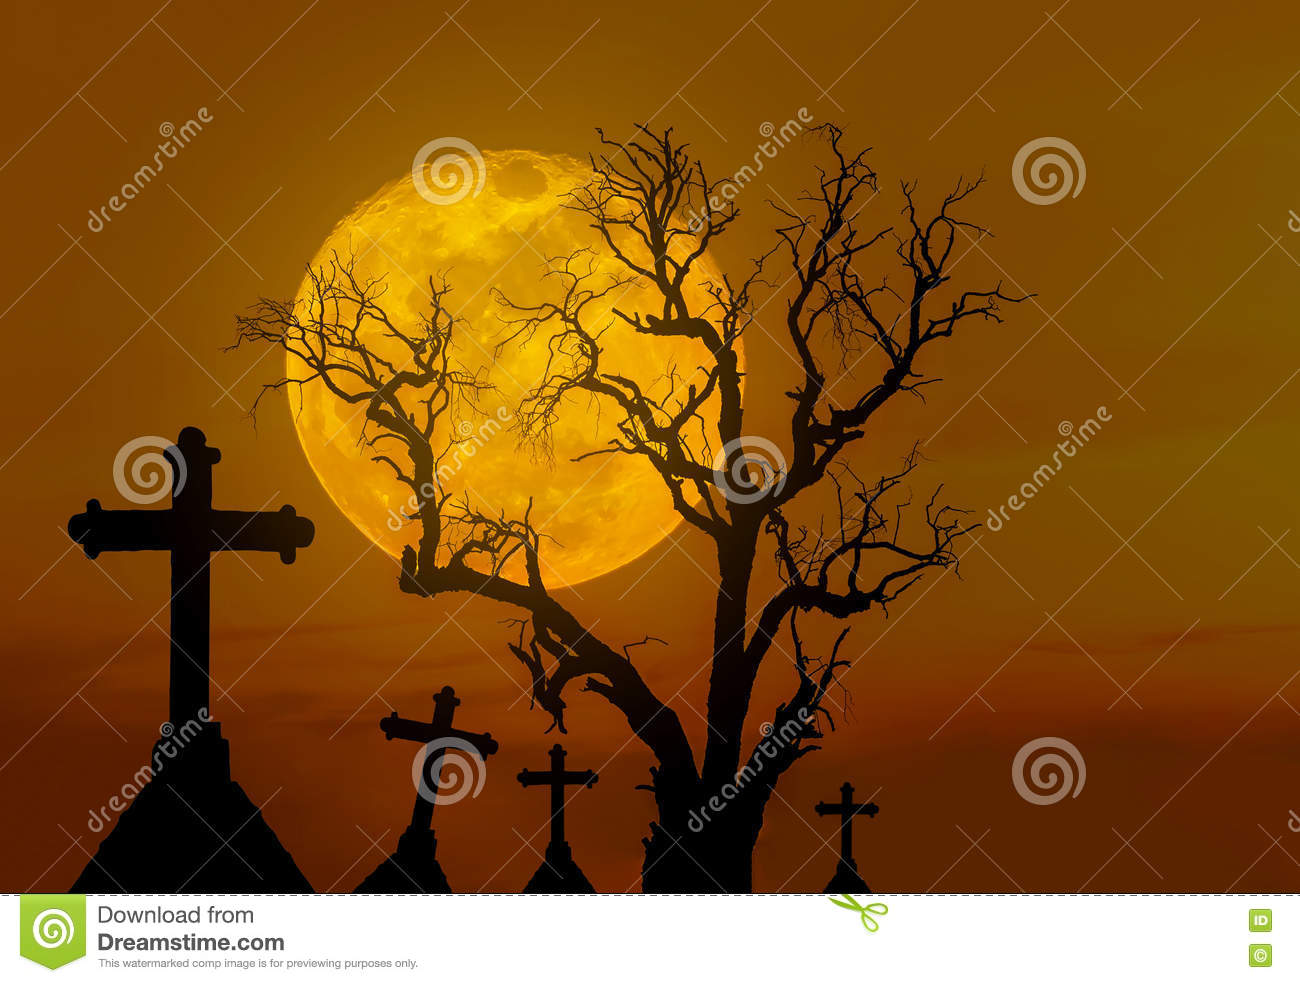 Halloween concept background with scary silhouette dead tree and spooky silhouette crosses in mystic graveyard and big full moon